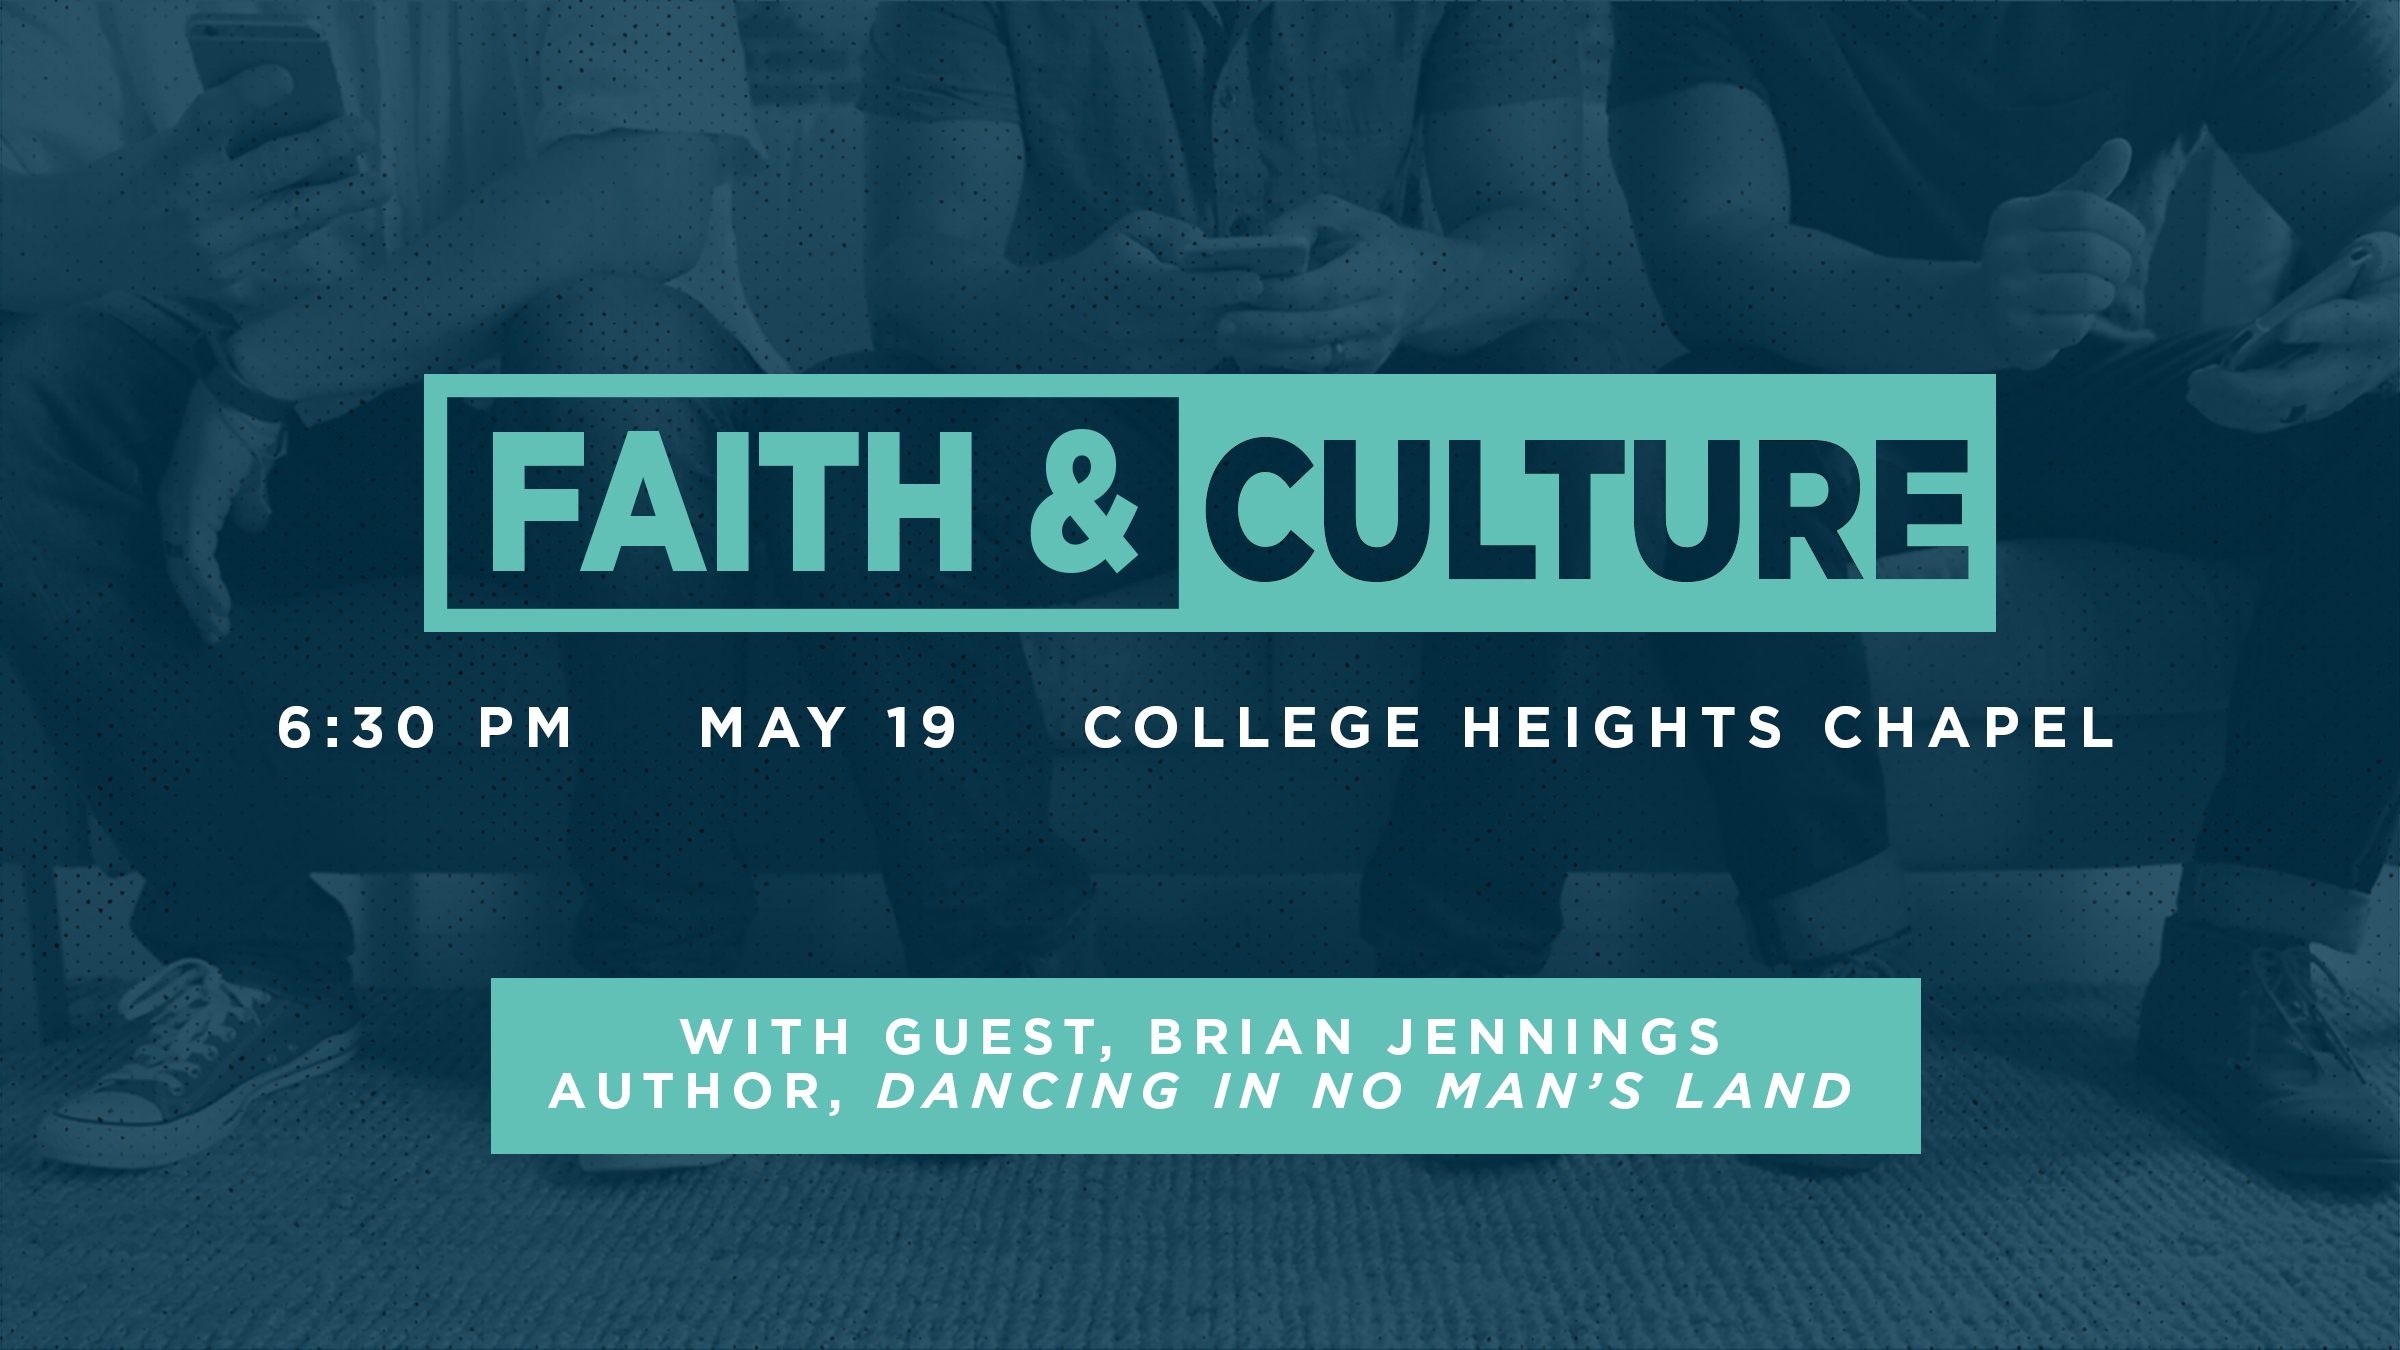 Faith & Culture Slide May 19 2019.jpg